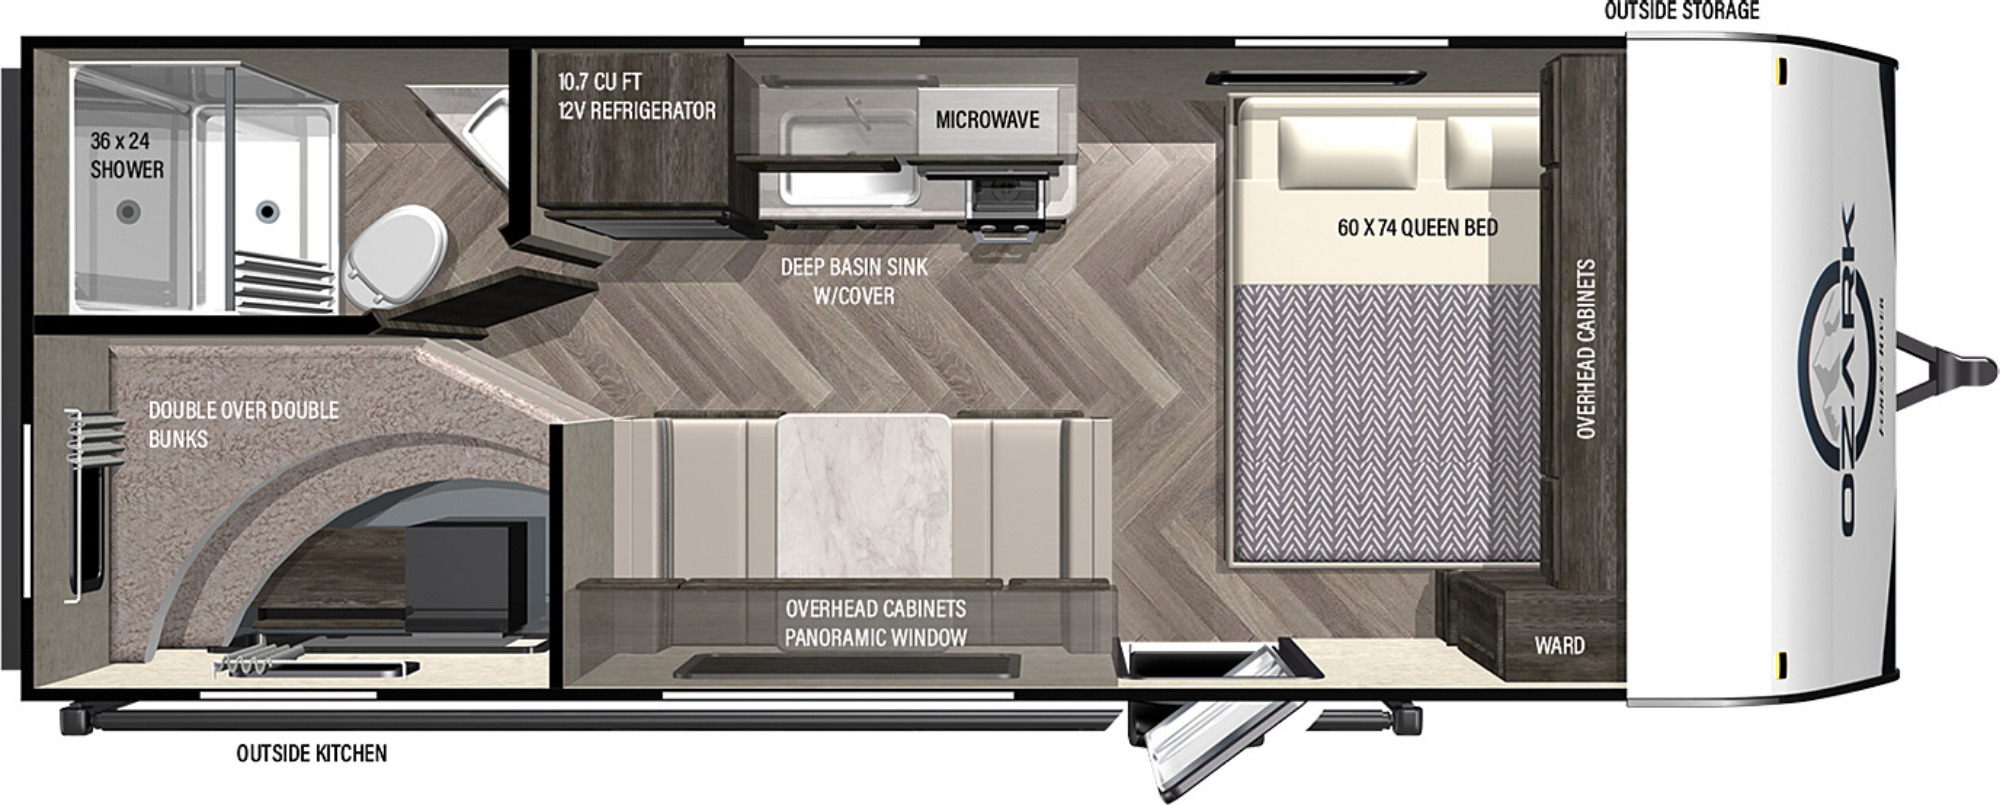 View Floor Plan for 2022 FOREST RIVER OZARK 1650BHKX